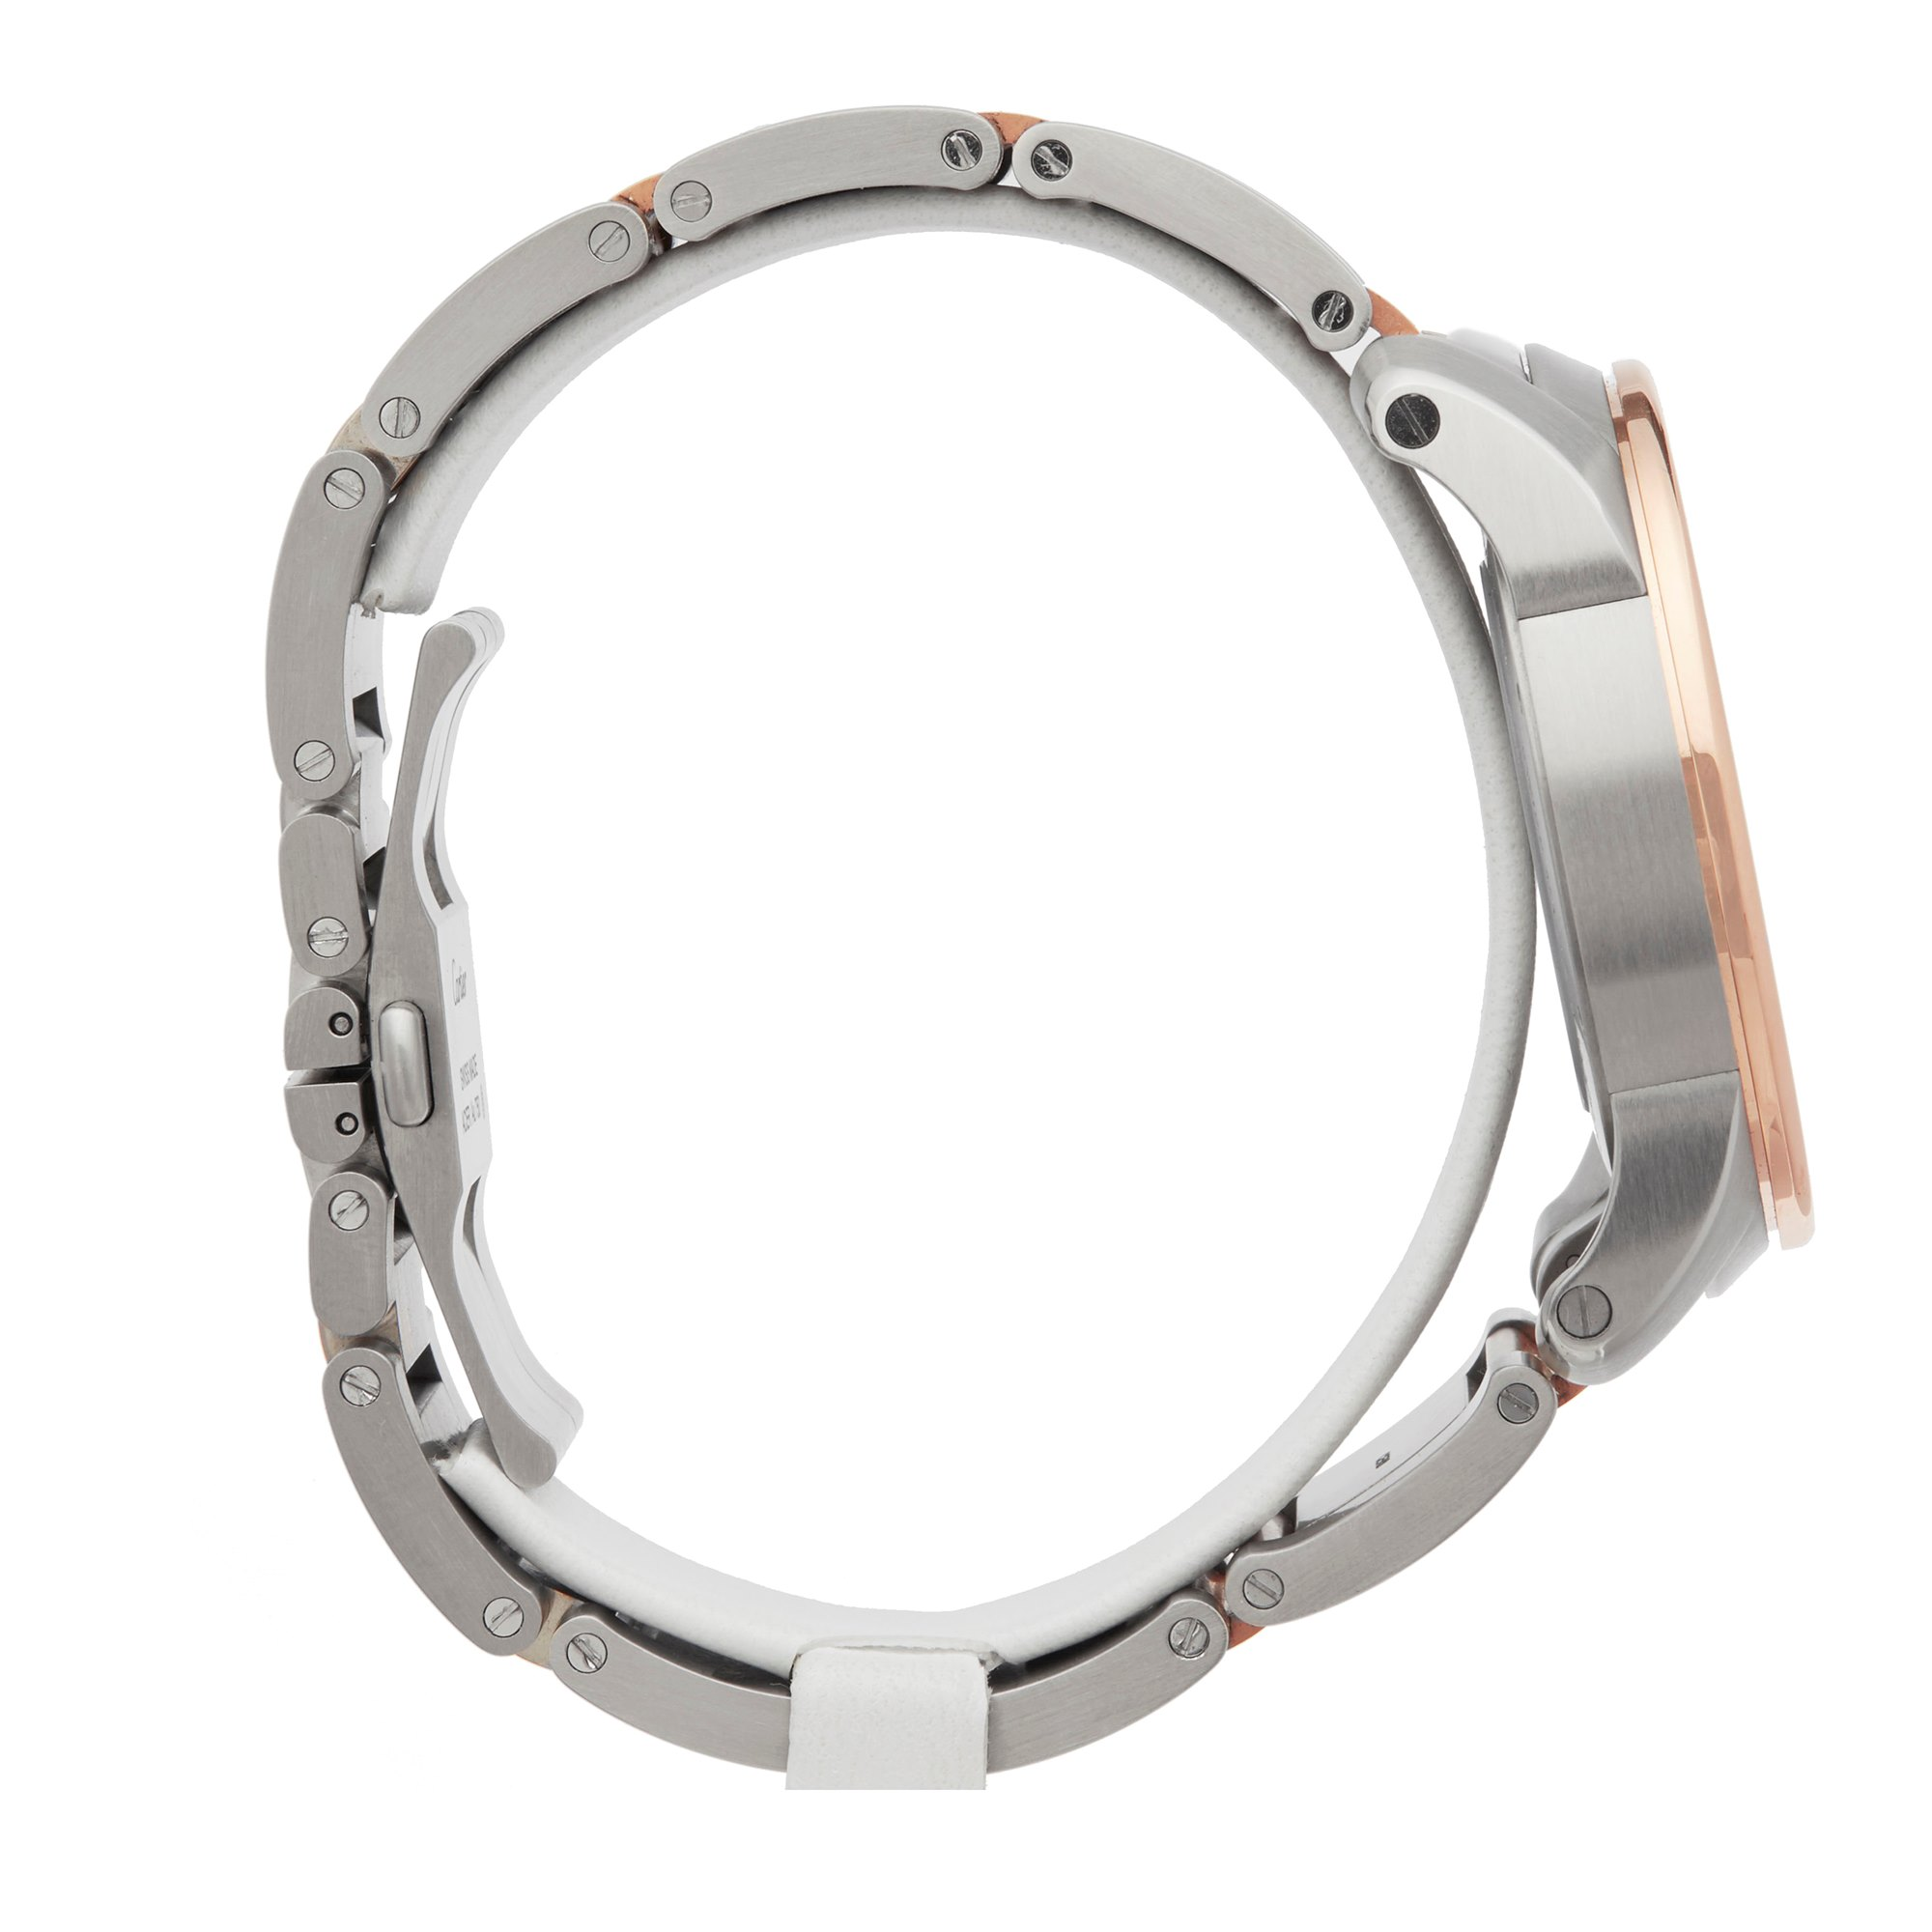 Cartier Calibre Stainless Steel & Rose Gold W7100036 or 3389